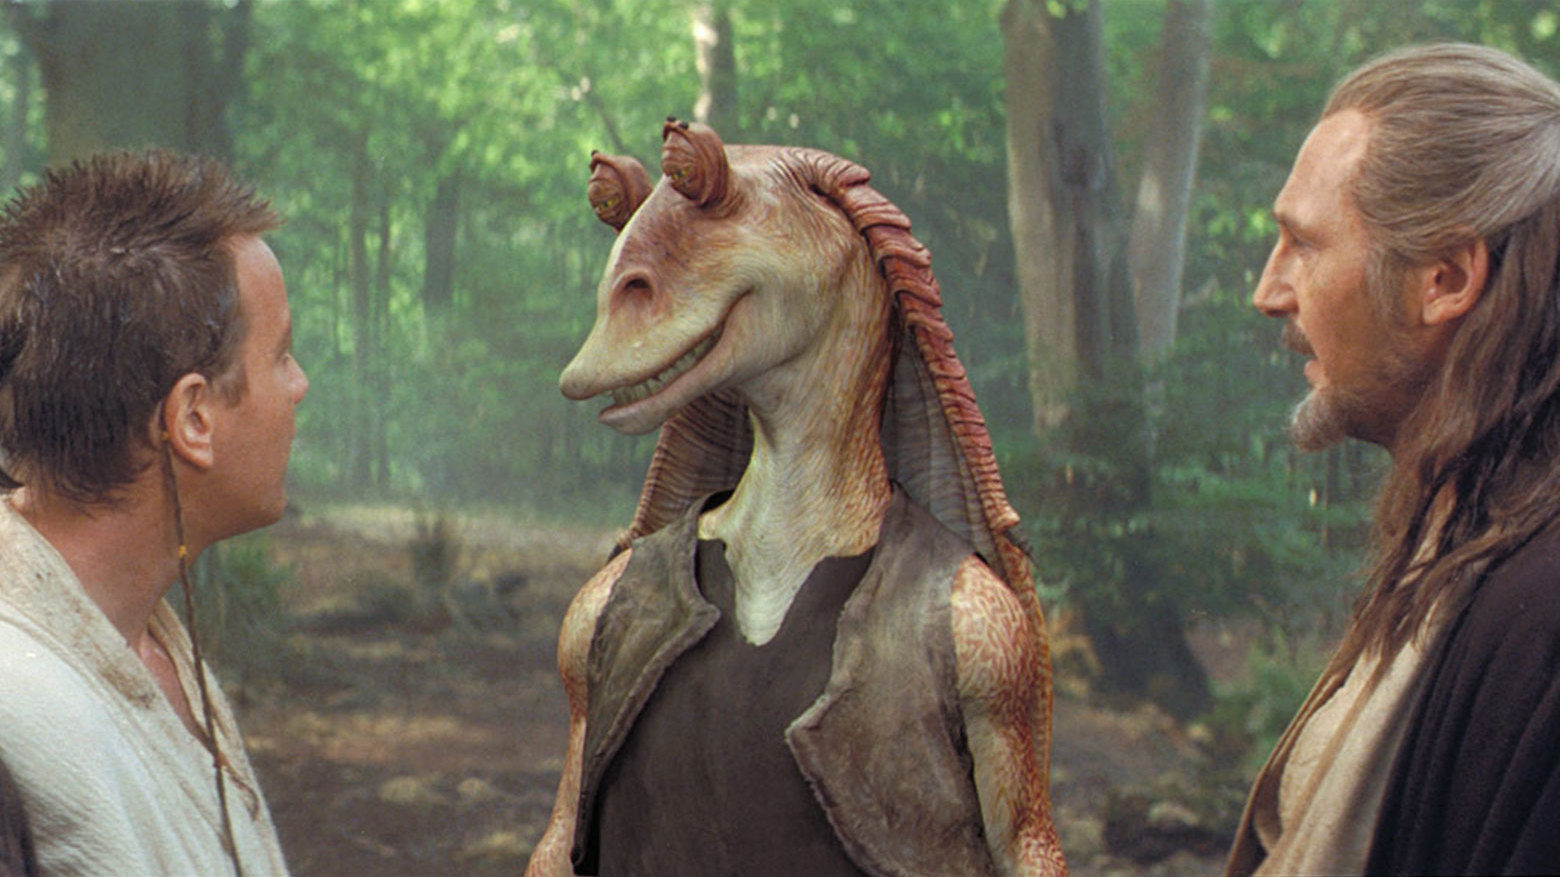 STAR WARS HAYRANLARINA MÜJDE: JAR JAR BINKS THE FORCE AWAKENS'TA ÖLEBİLİR